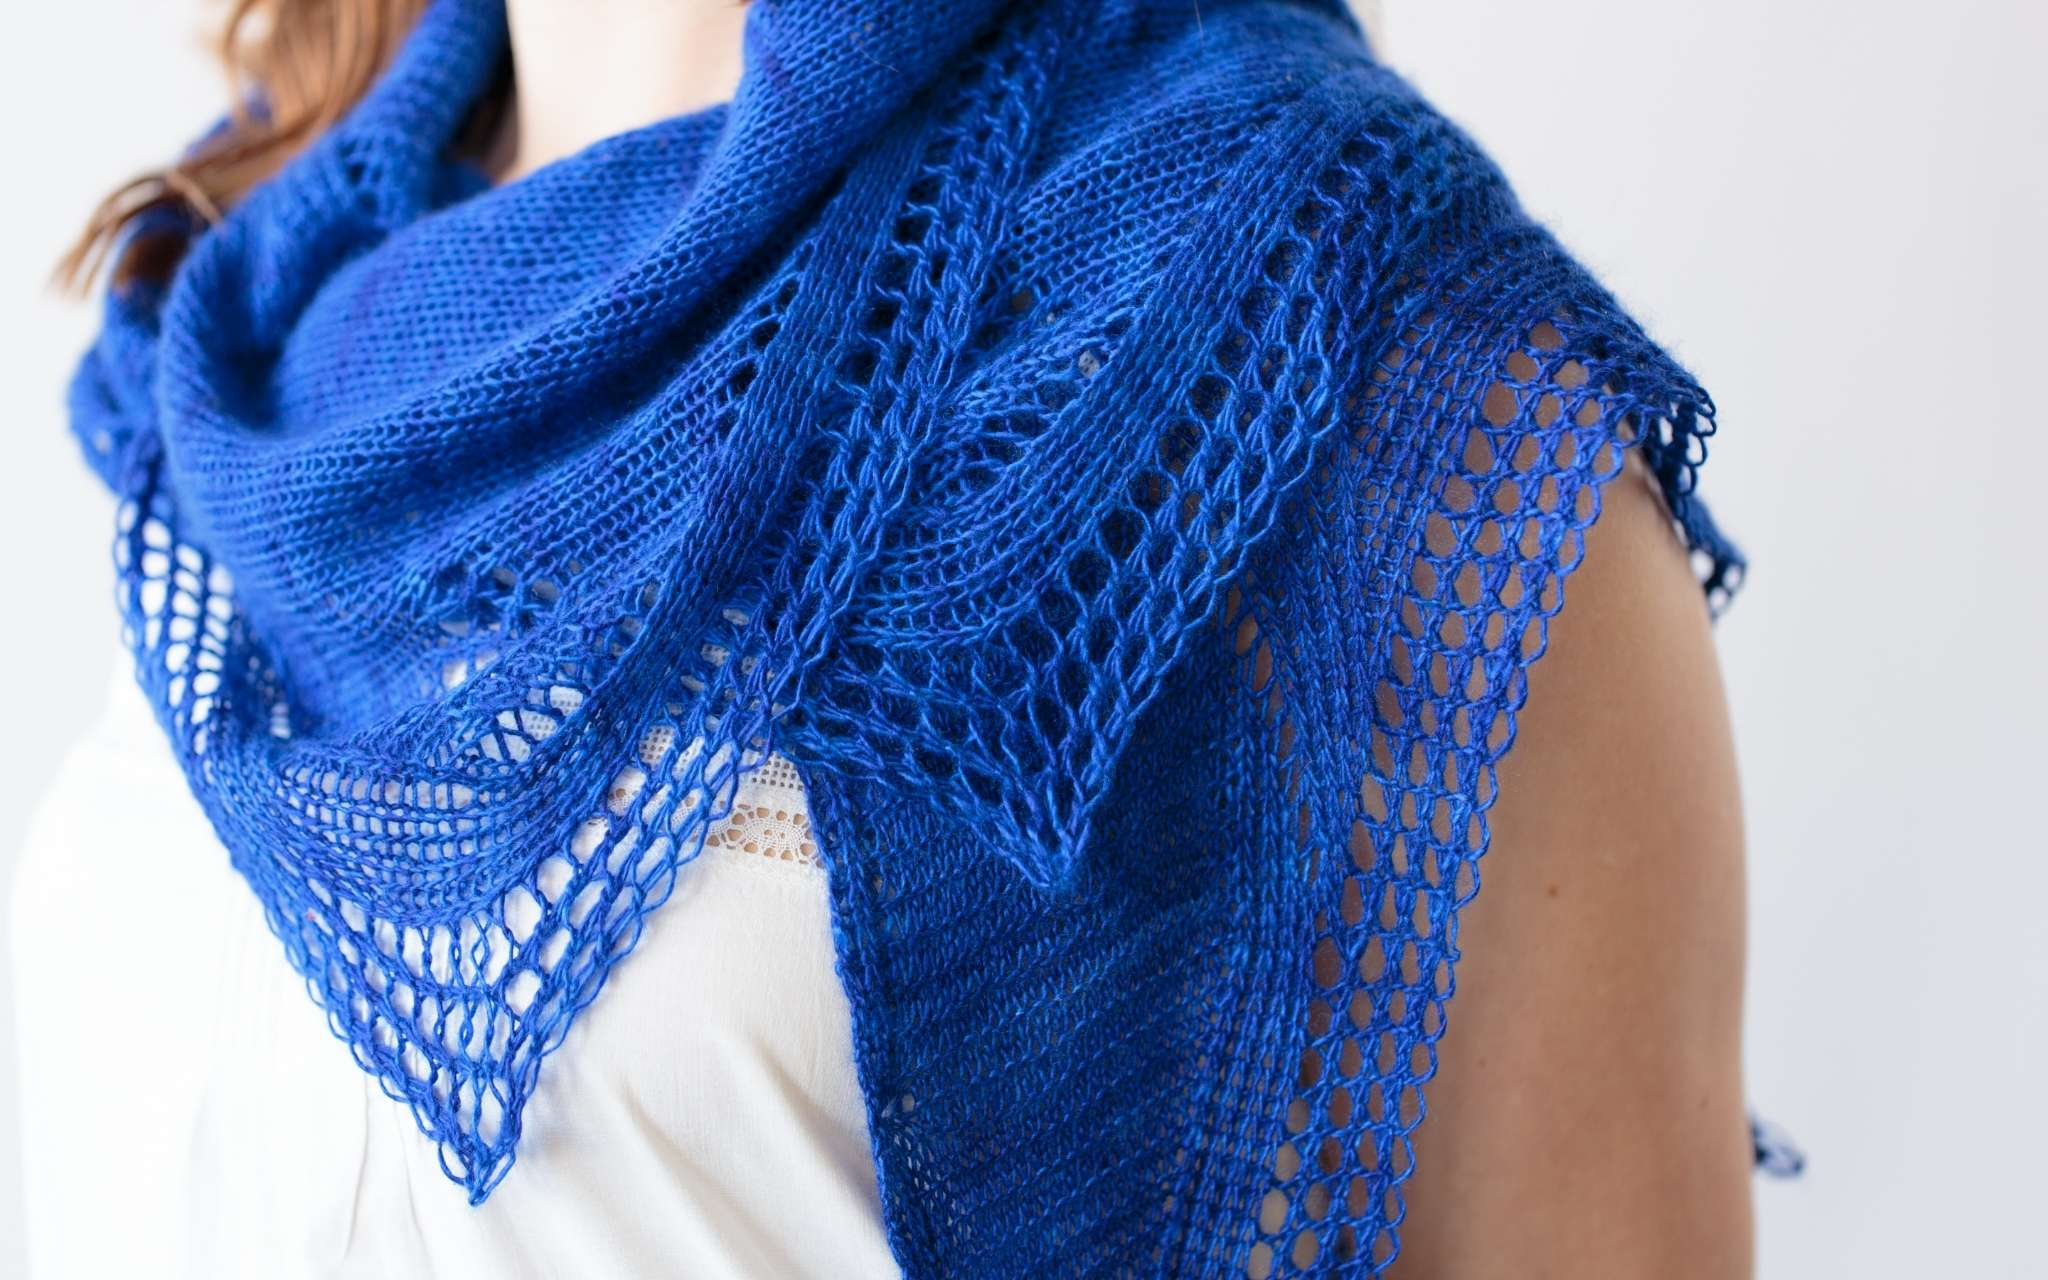 A close up of a vivid blue shawl, wrapped around the shoulders of a white model. The shawls is delicate and lacey with strong points.